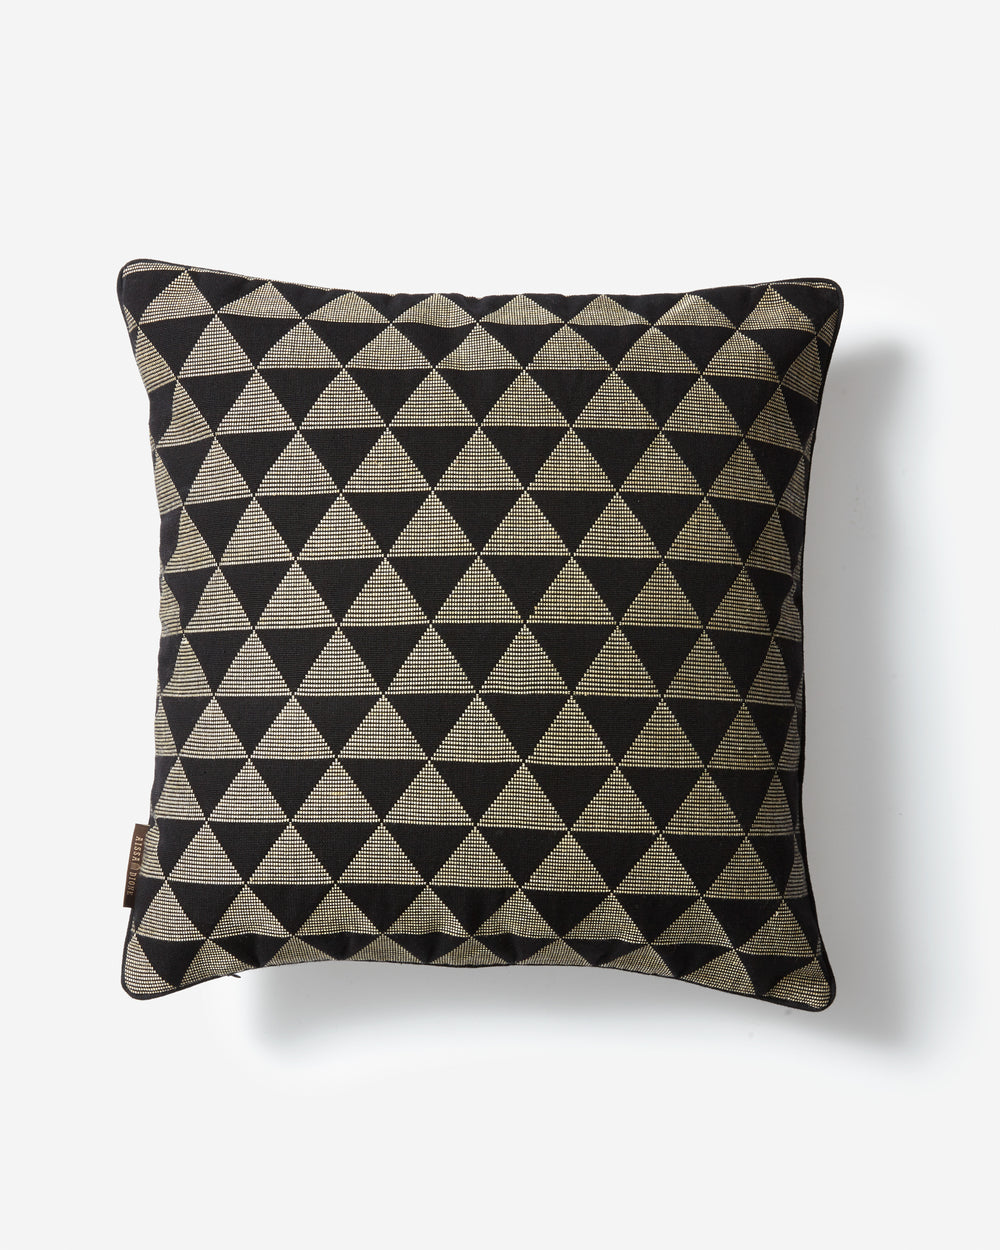 Luxury Hand-Woven Cushion – Kameroun Black